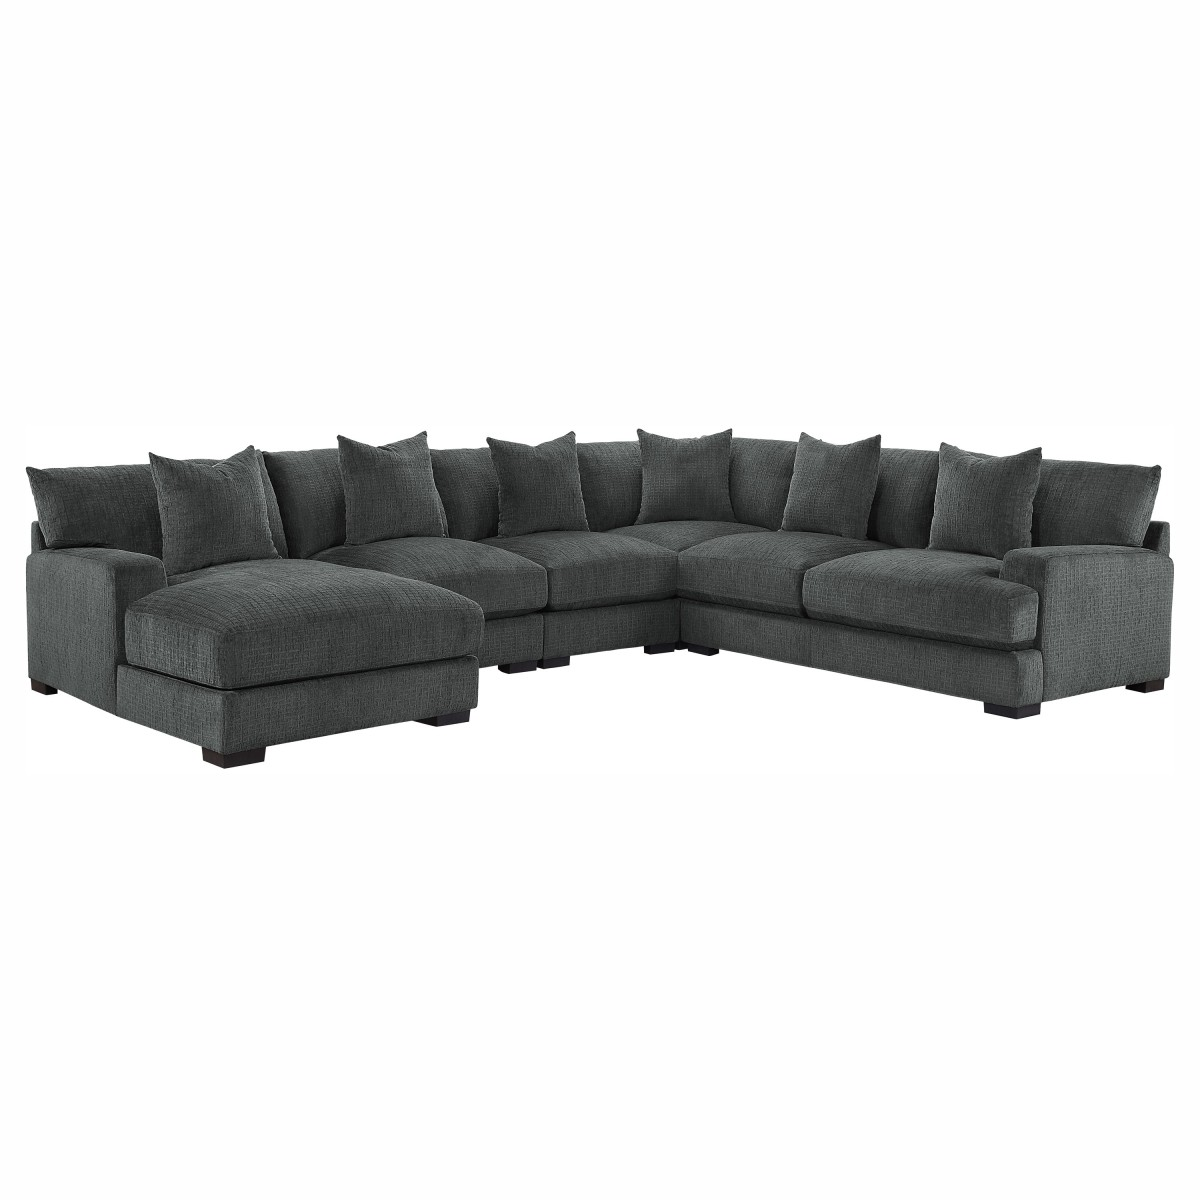 He 9857dg 5lc2r 5 Pc Worchester Dark Gray Chenille Fabric Modular Sectional Sofa Left Chaise